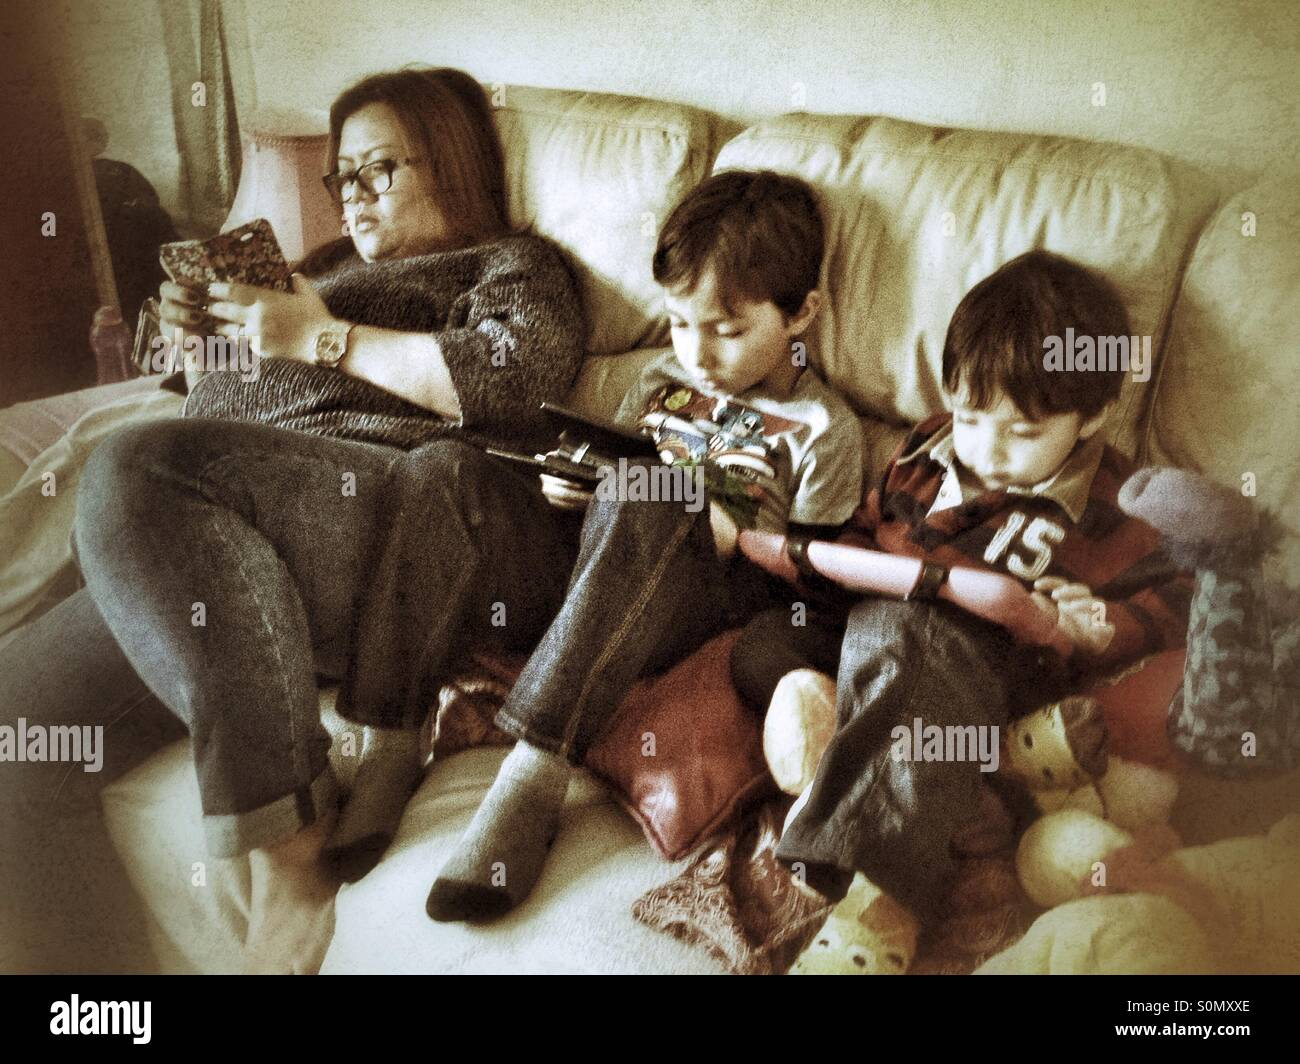 Family using gadgets on the sofa. - Stock Image